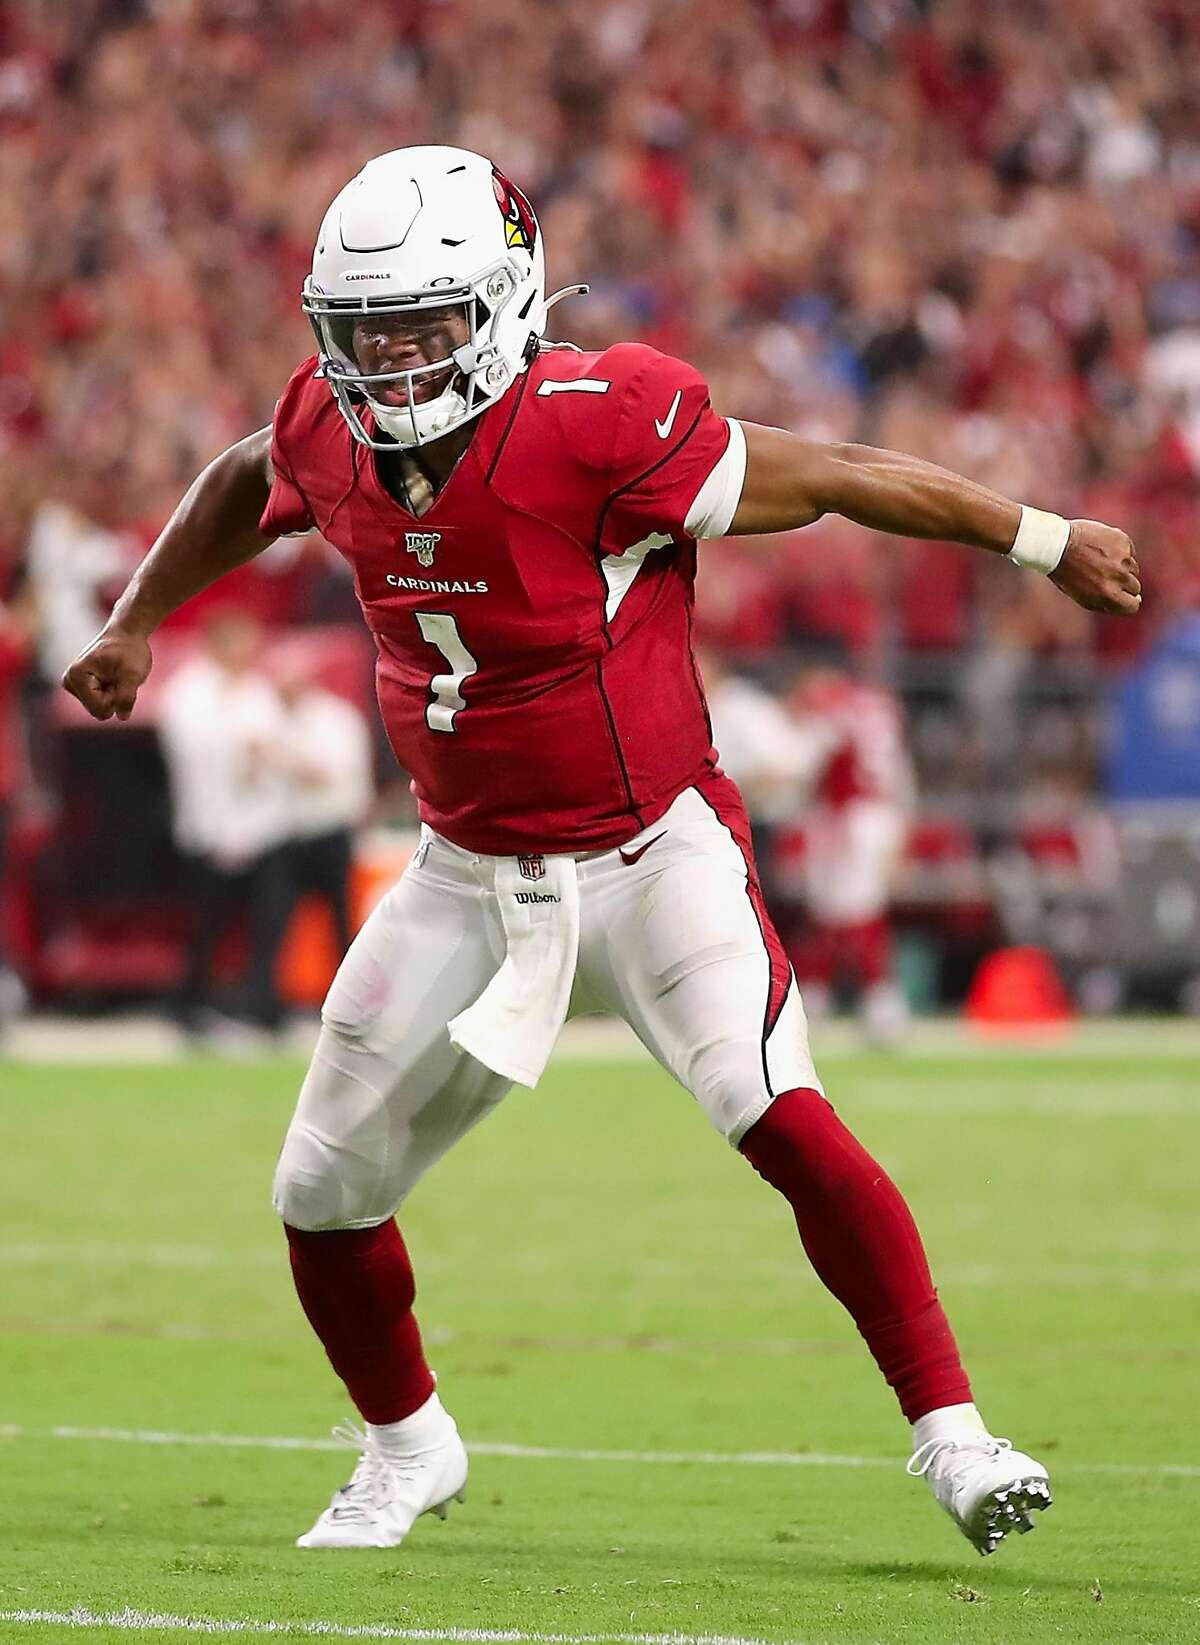 GLENDALE, ARIZONA - SEPTEMBER 08: Quarterback Kyler Murray #1 of the Arizona Cardinals celebrates after converting a two-point conversion against the Detroit Lions during the final moments of the second half of the NFL game at State Farm Stadium on Septe